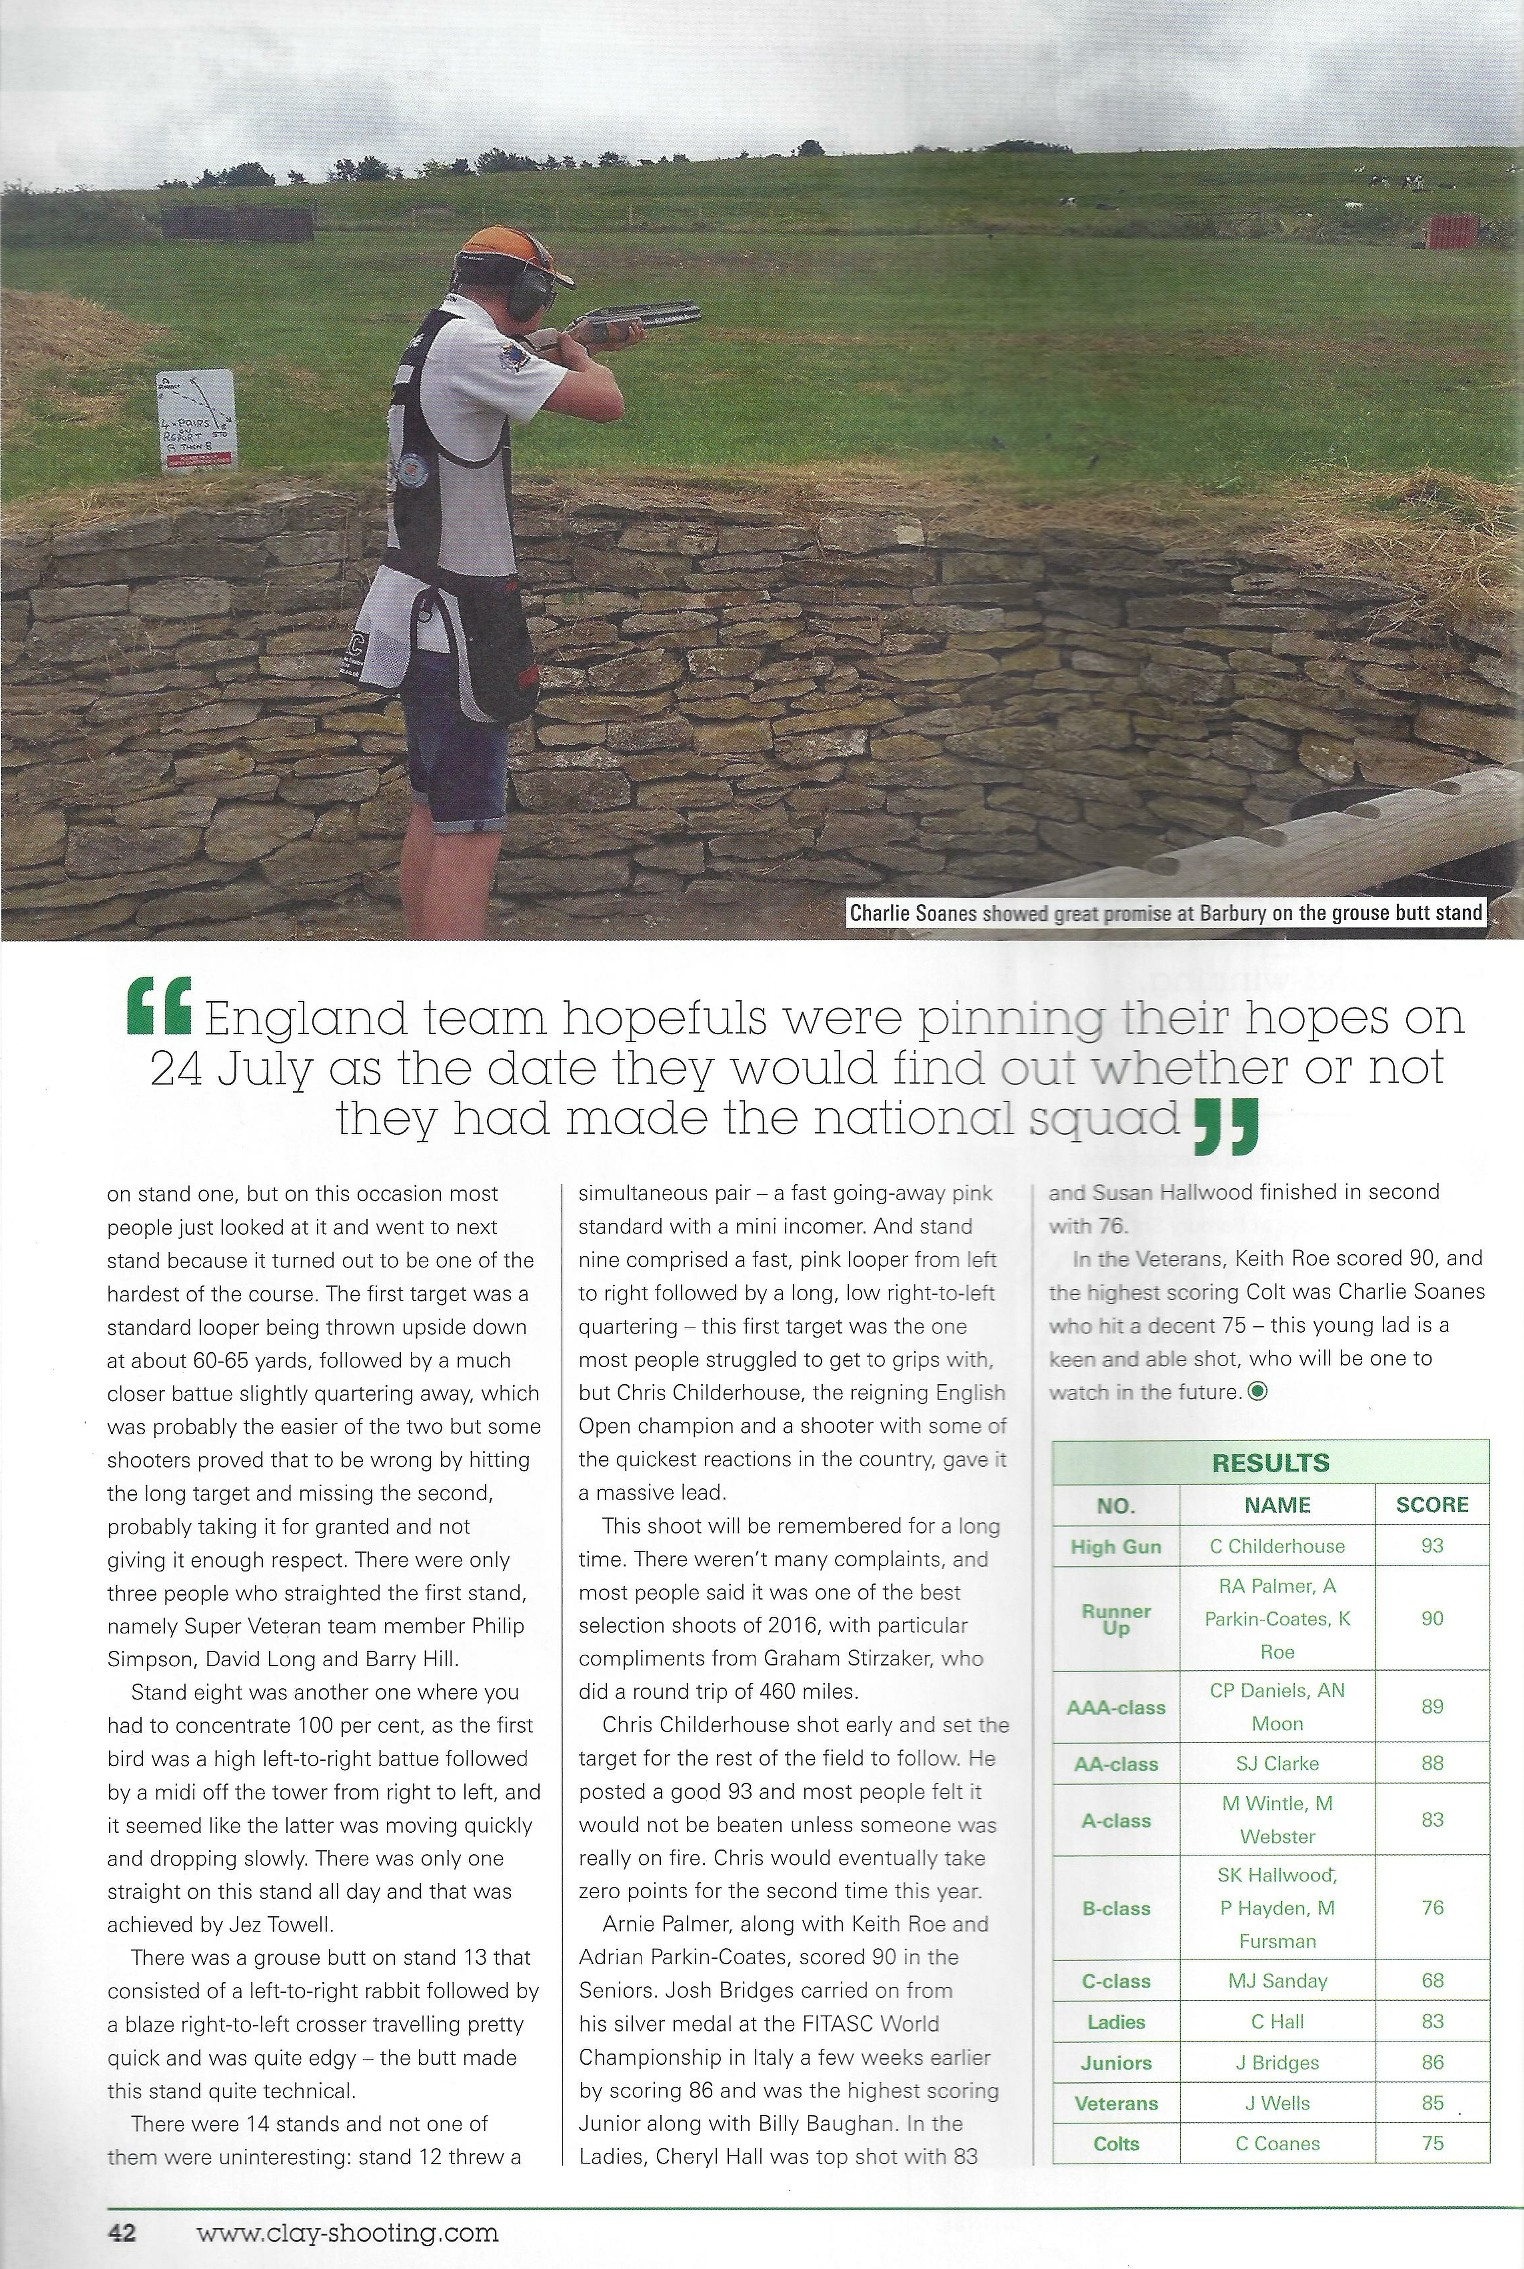 Clay Shooting magazine article - Second Page